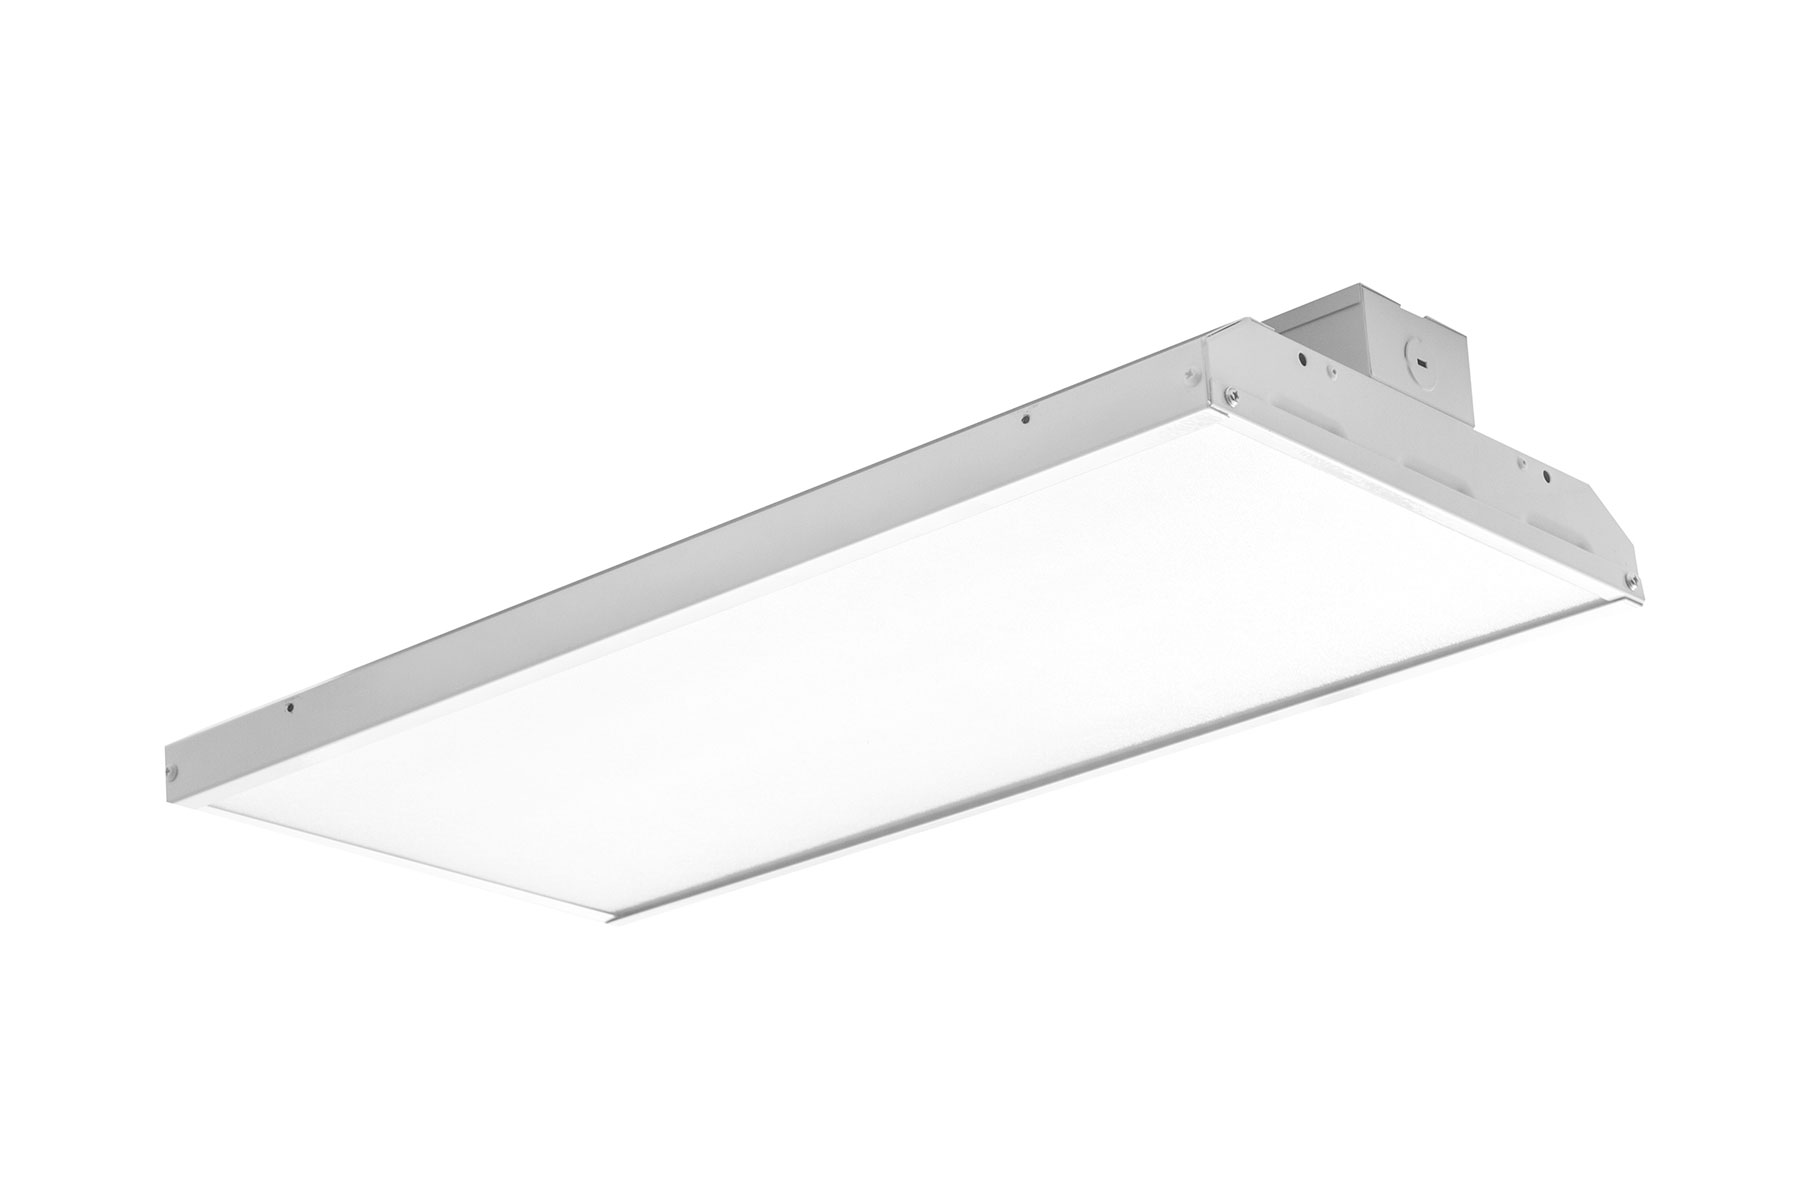 2FT-Linear-High-Bay-LED-Lights